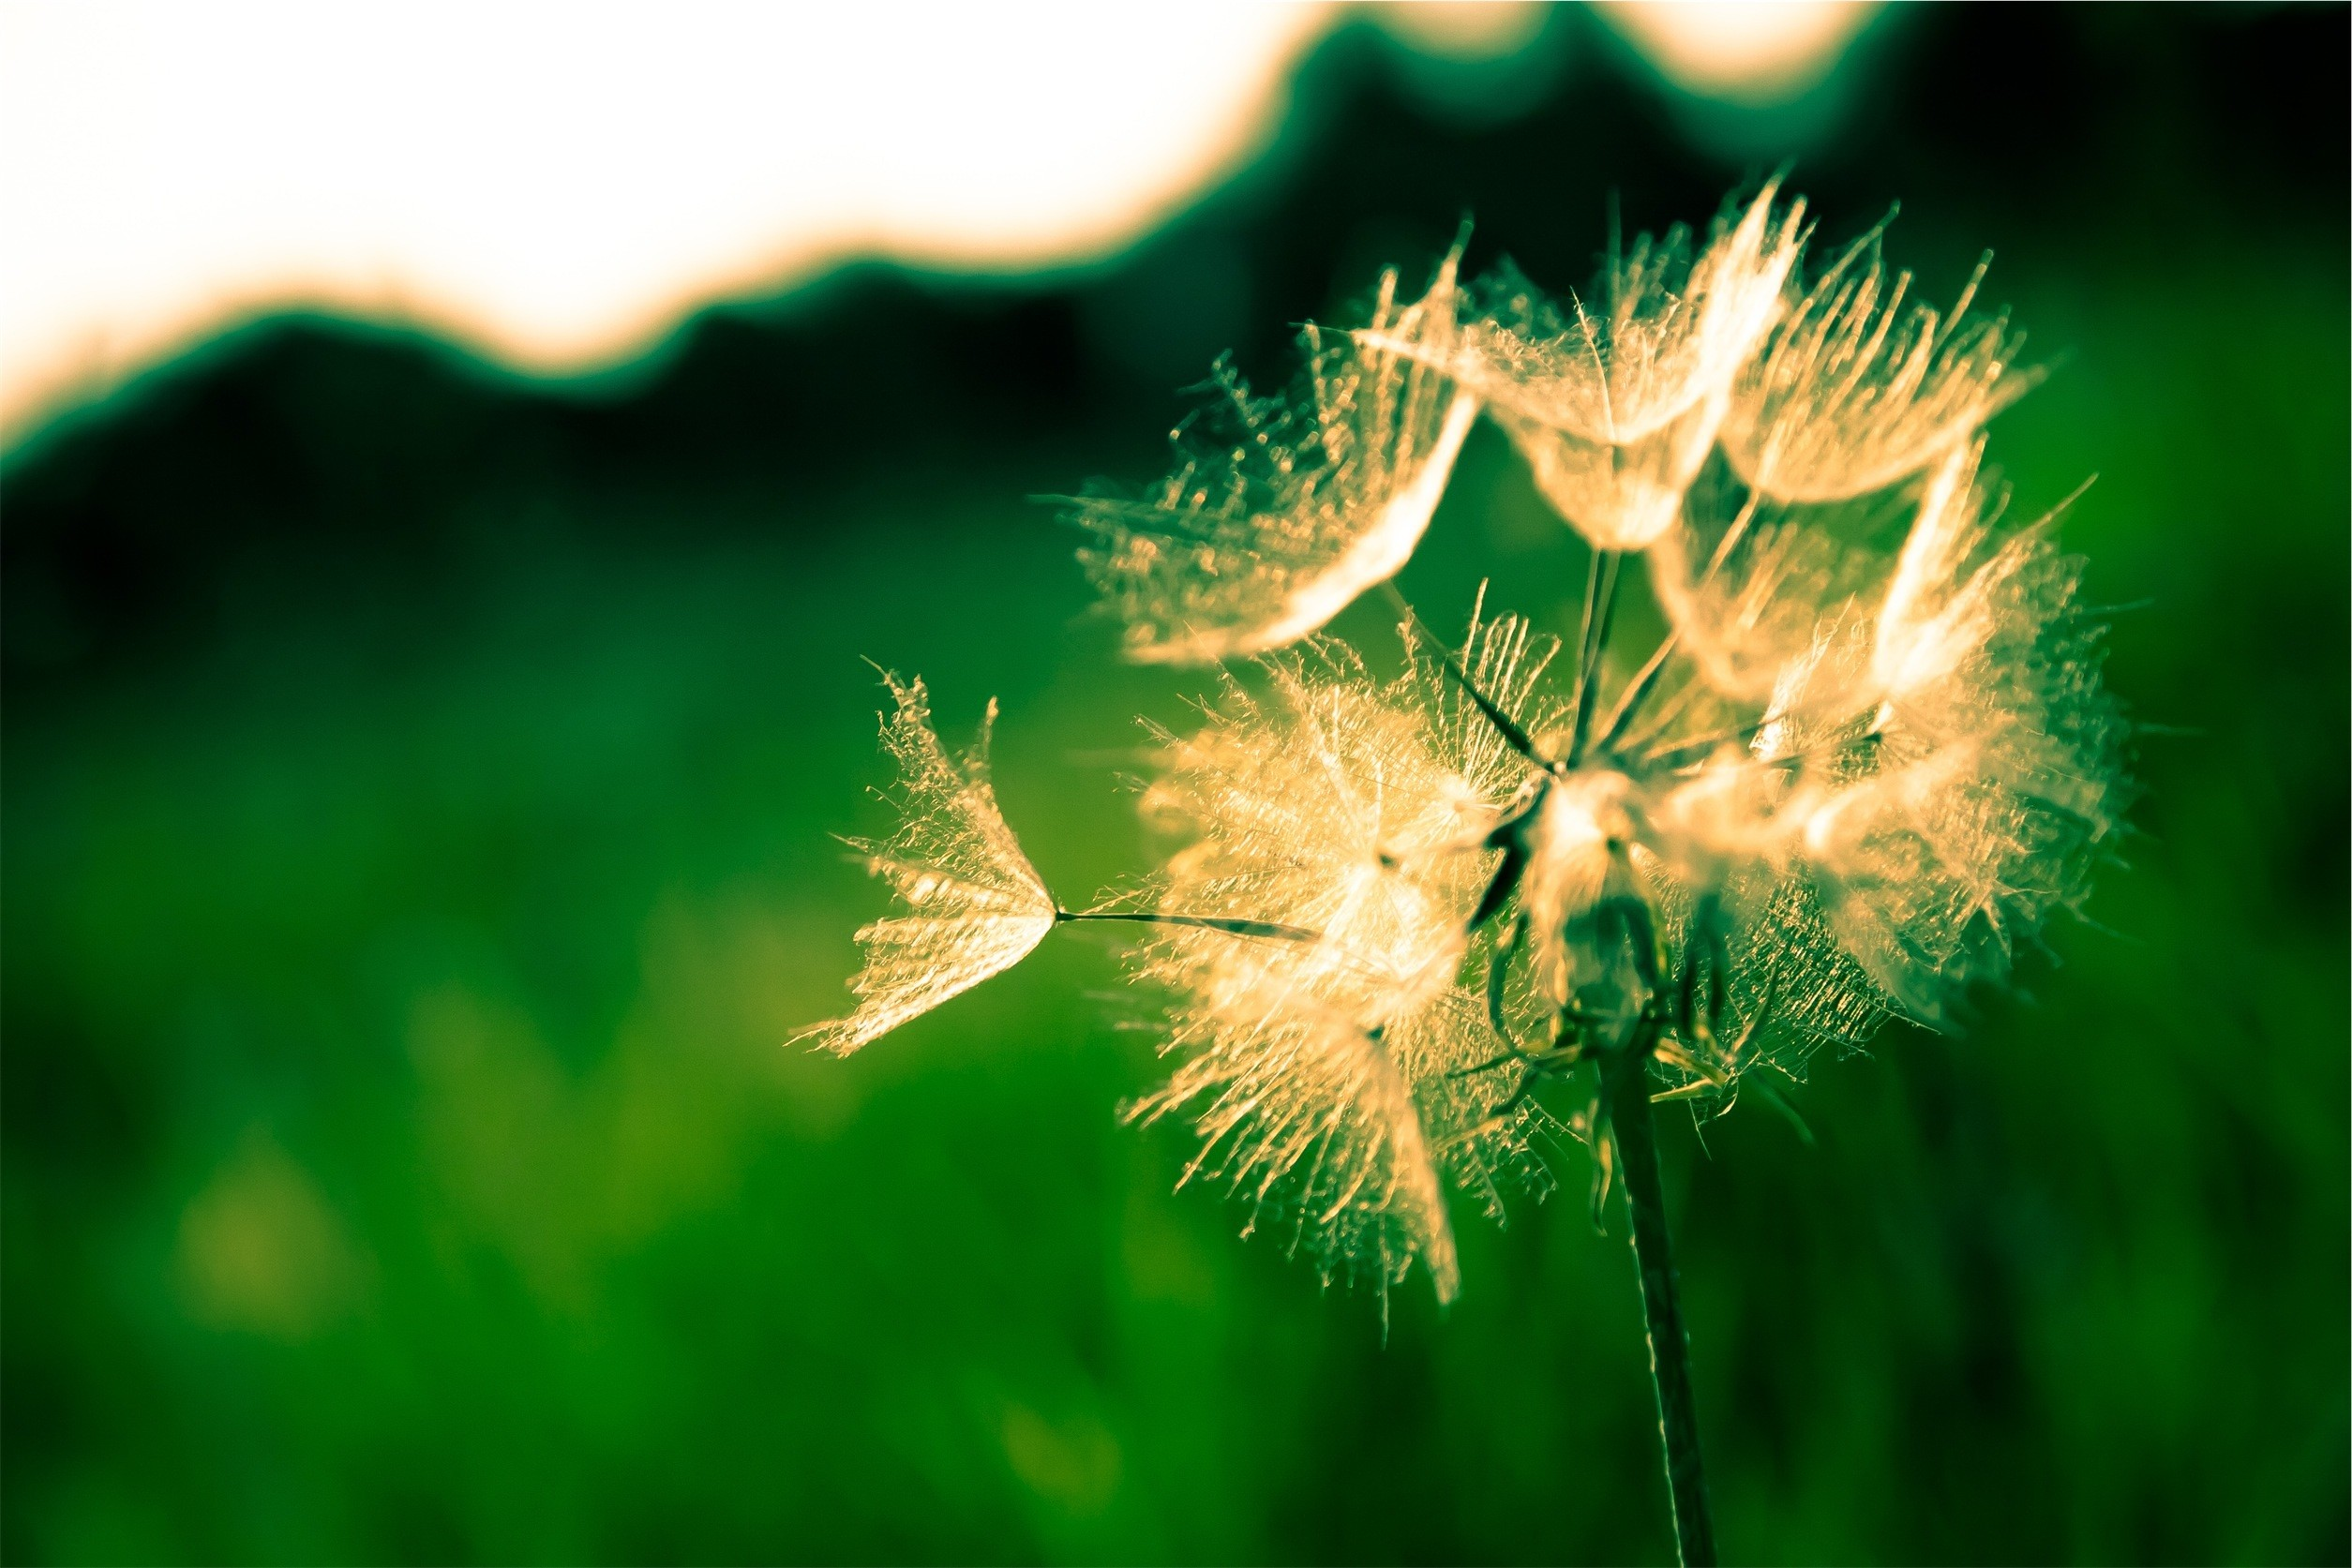 Free Images : tree, nature, grass, branch, blossom, light, white, meadow,  dandelion, sunlight, leaf, flower, summer, sparkler, green, natural,  yellow, …